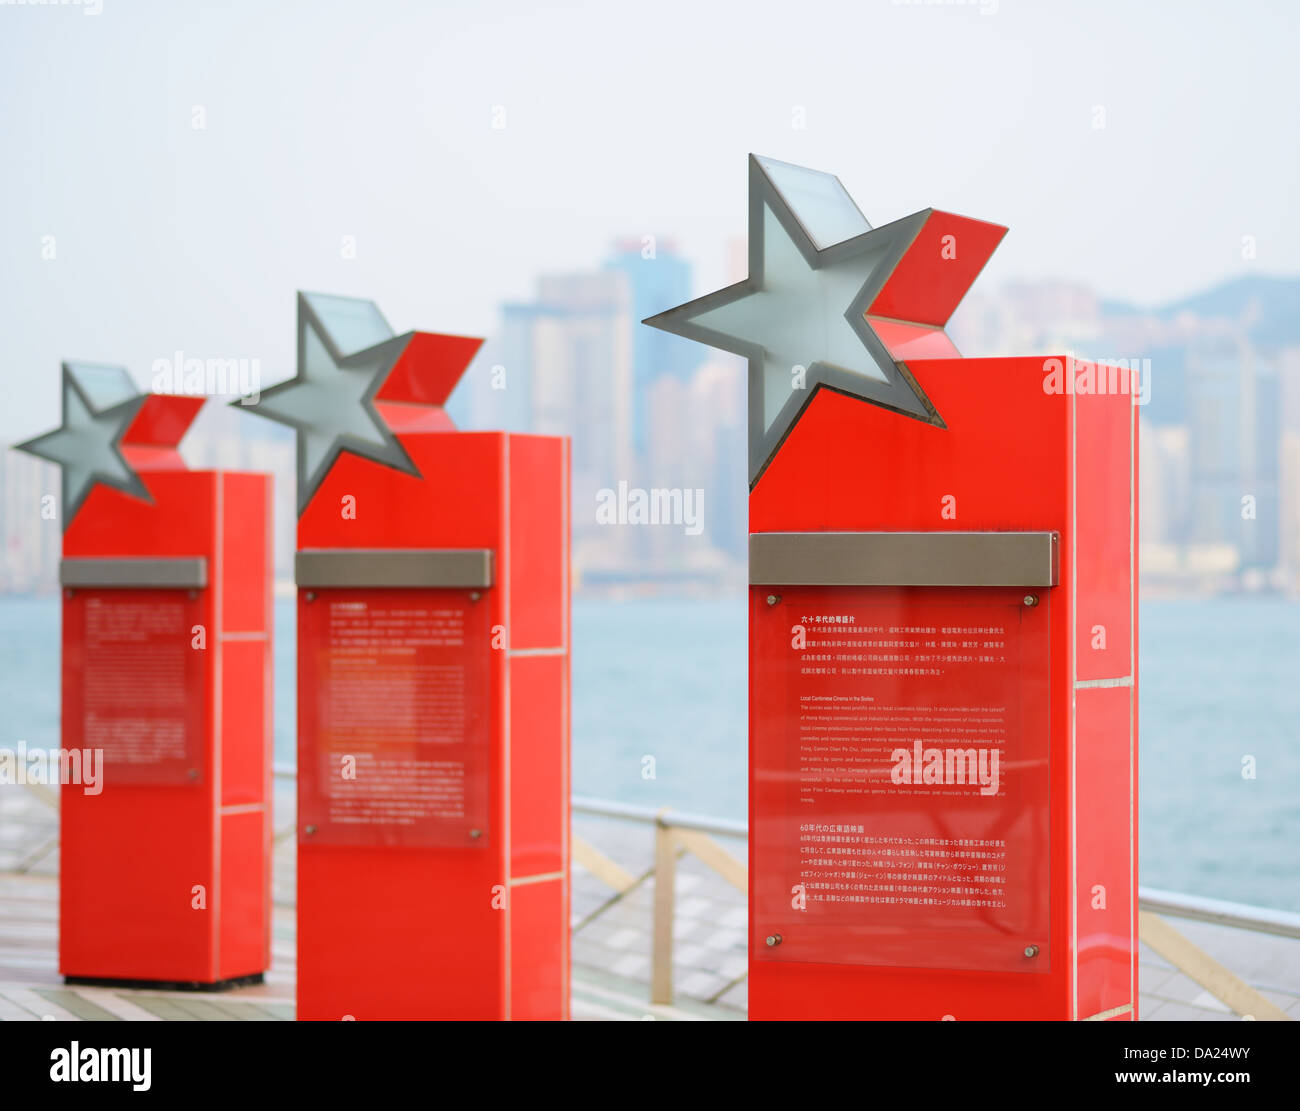 Avenue of the Stars in Hong Kong. - Stock Image